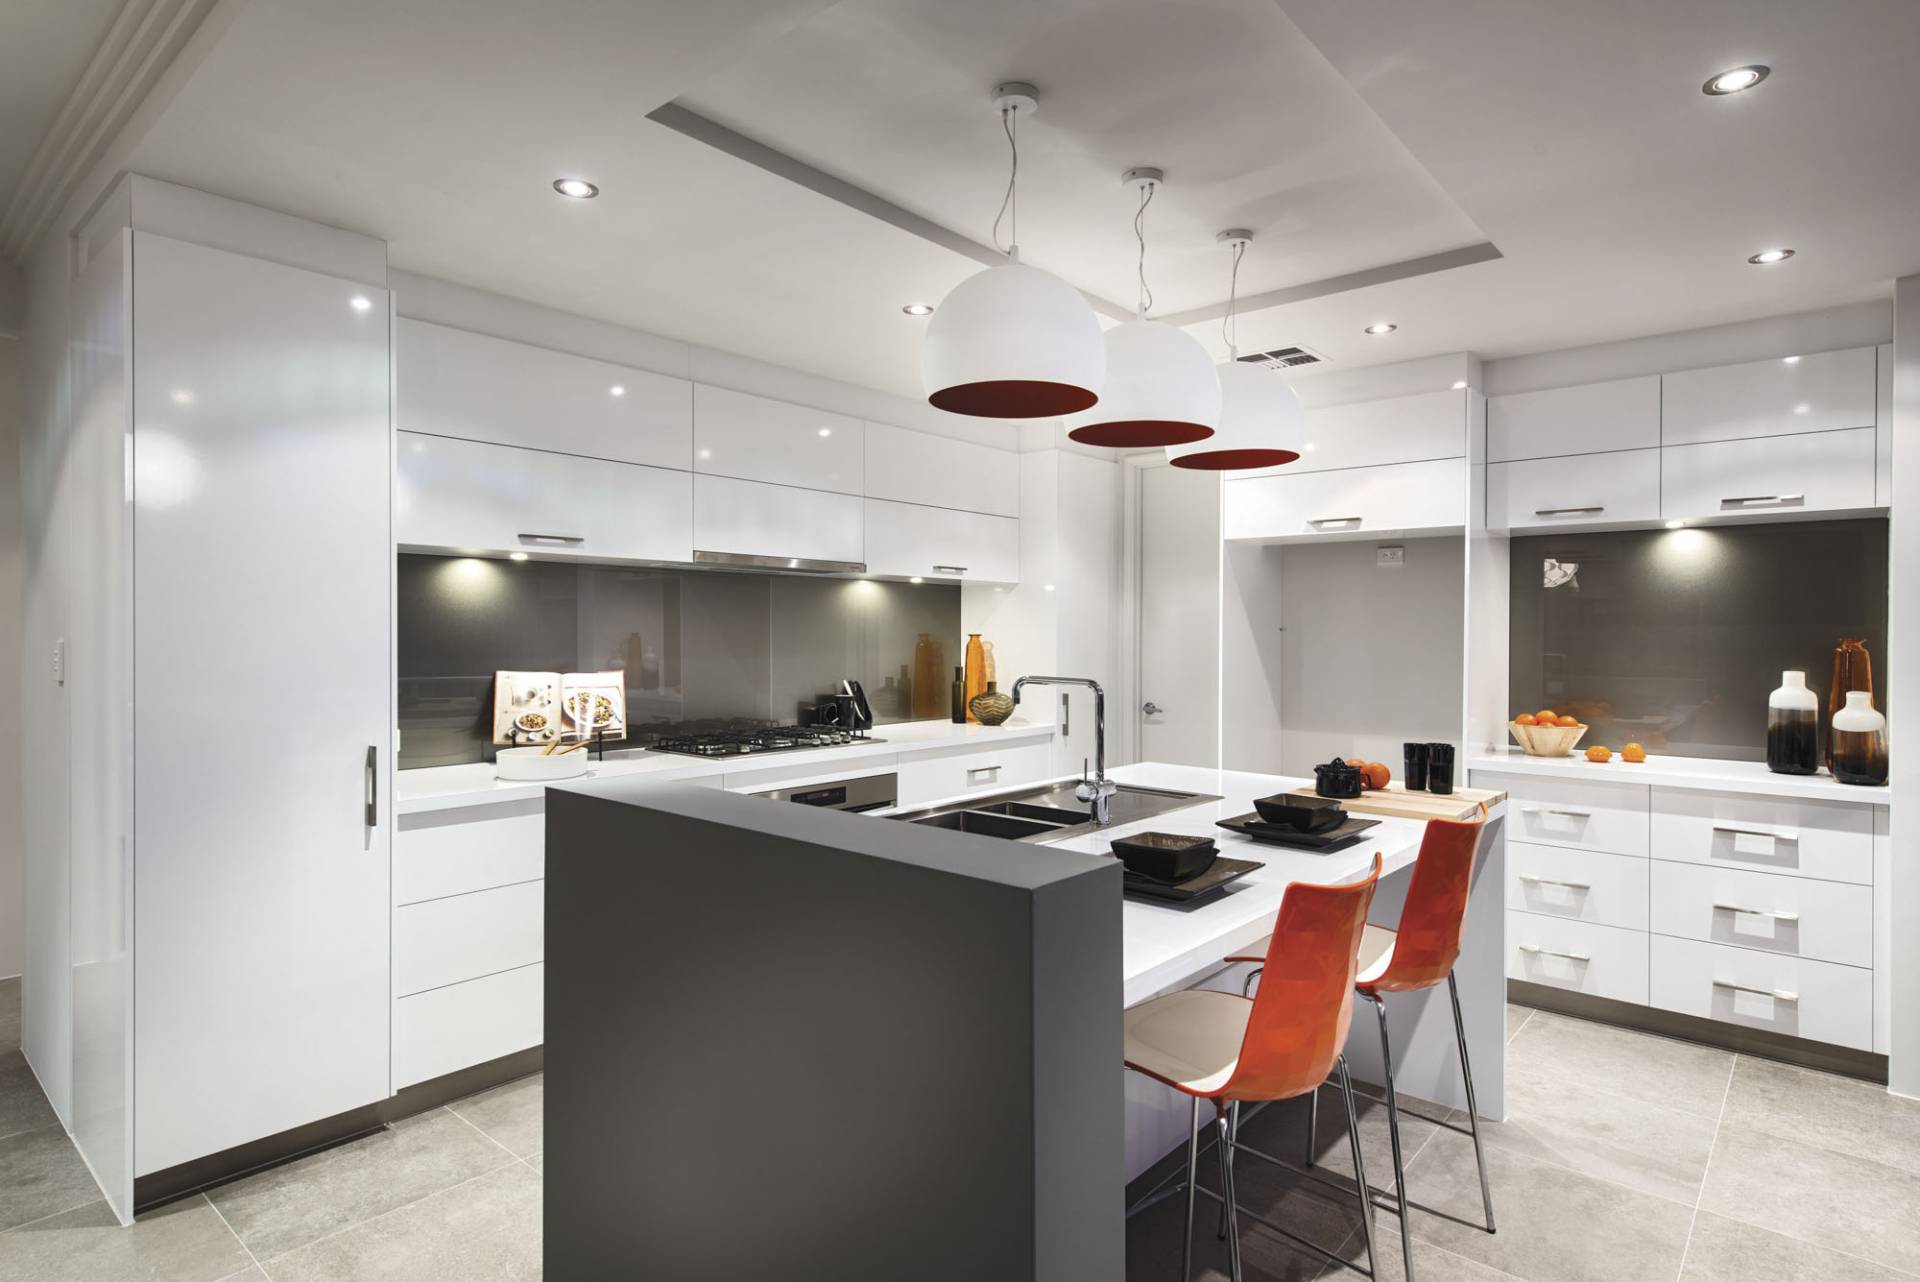 soho amelia display home kitchen with white cupboards and tiled floor